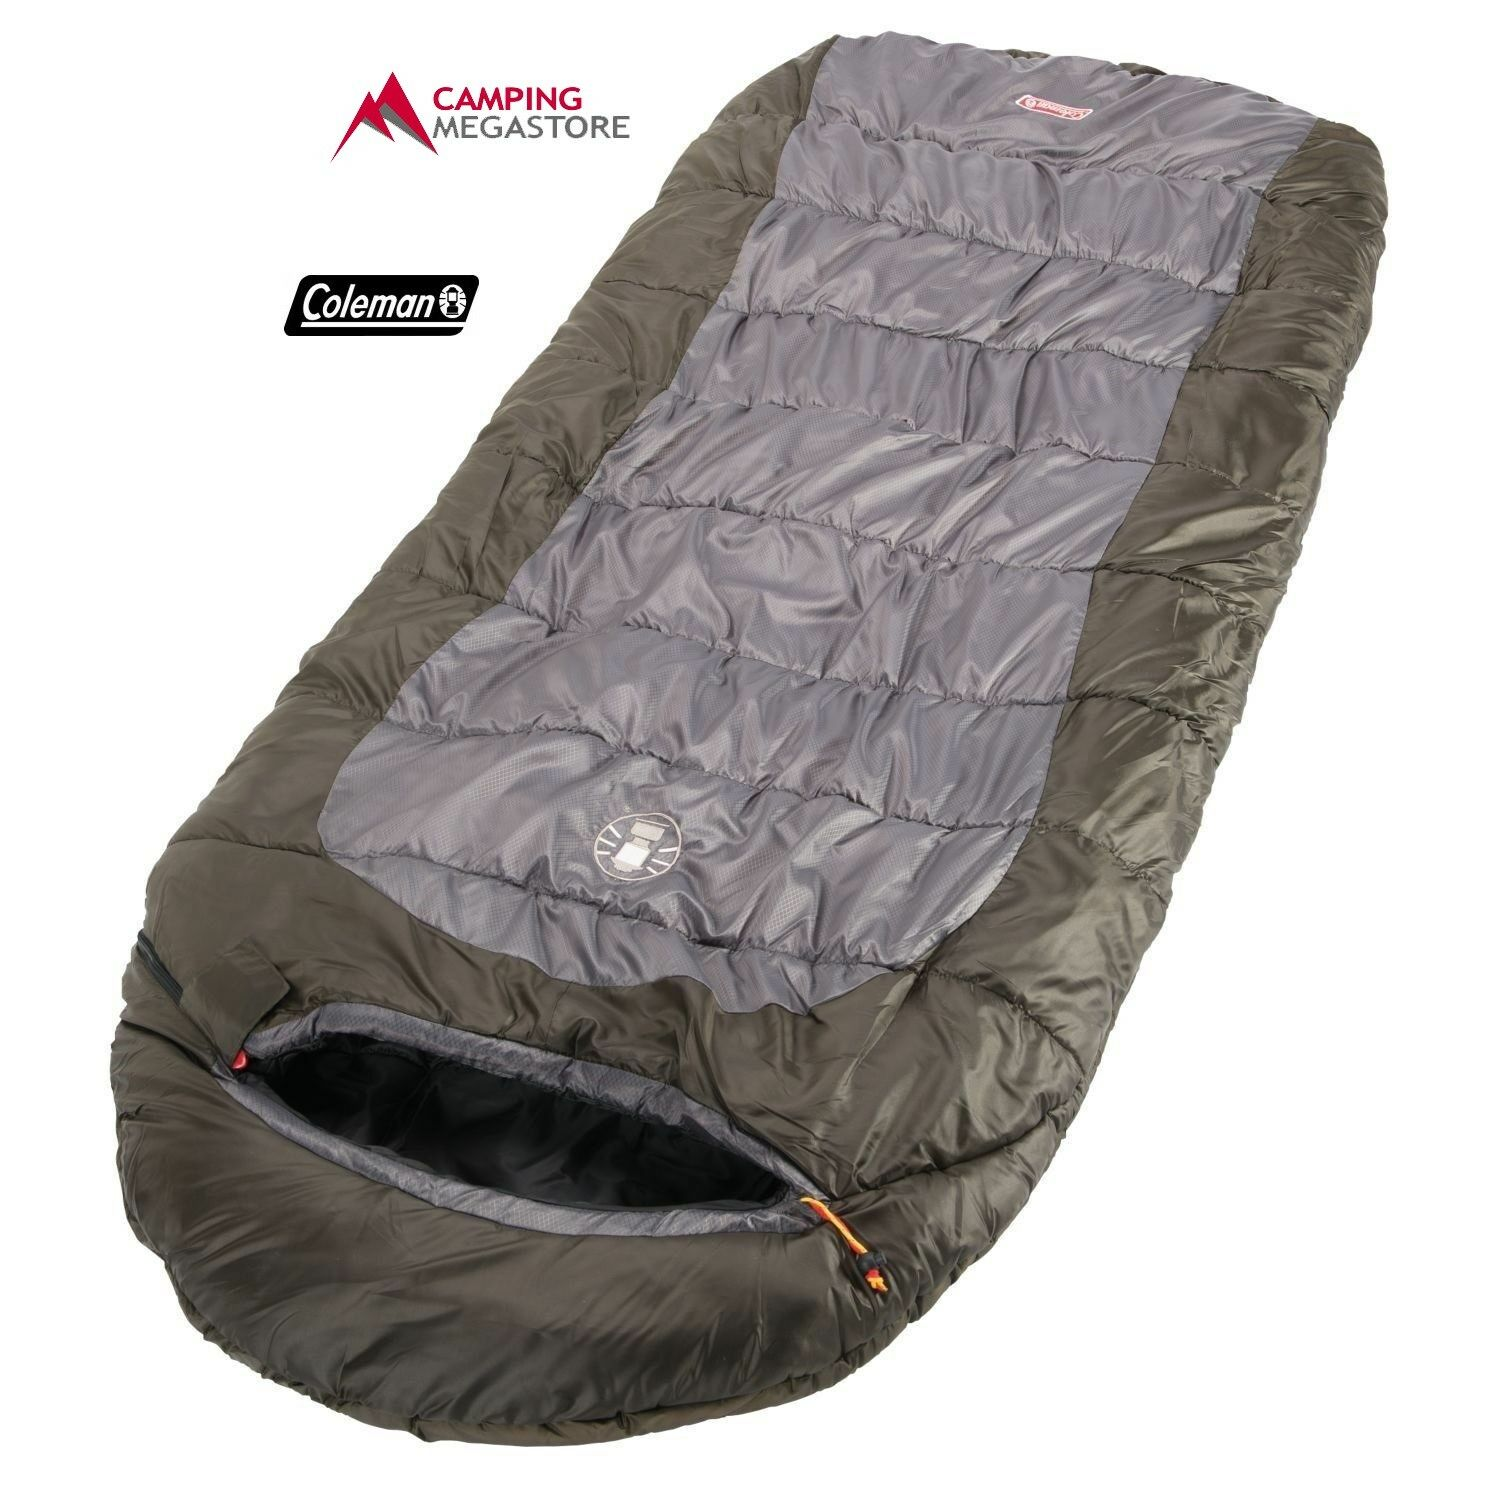 COLEMAN PIONEER   - 3 C SLEEPING BAG BIG & TALL (85CM X 235CM)  big savings